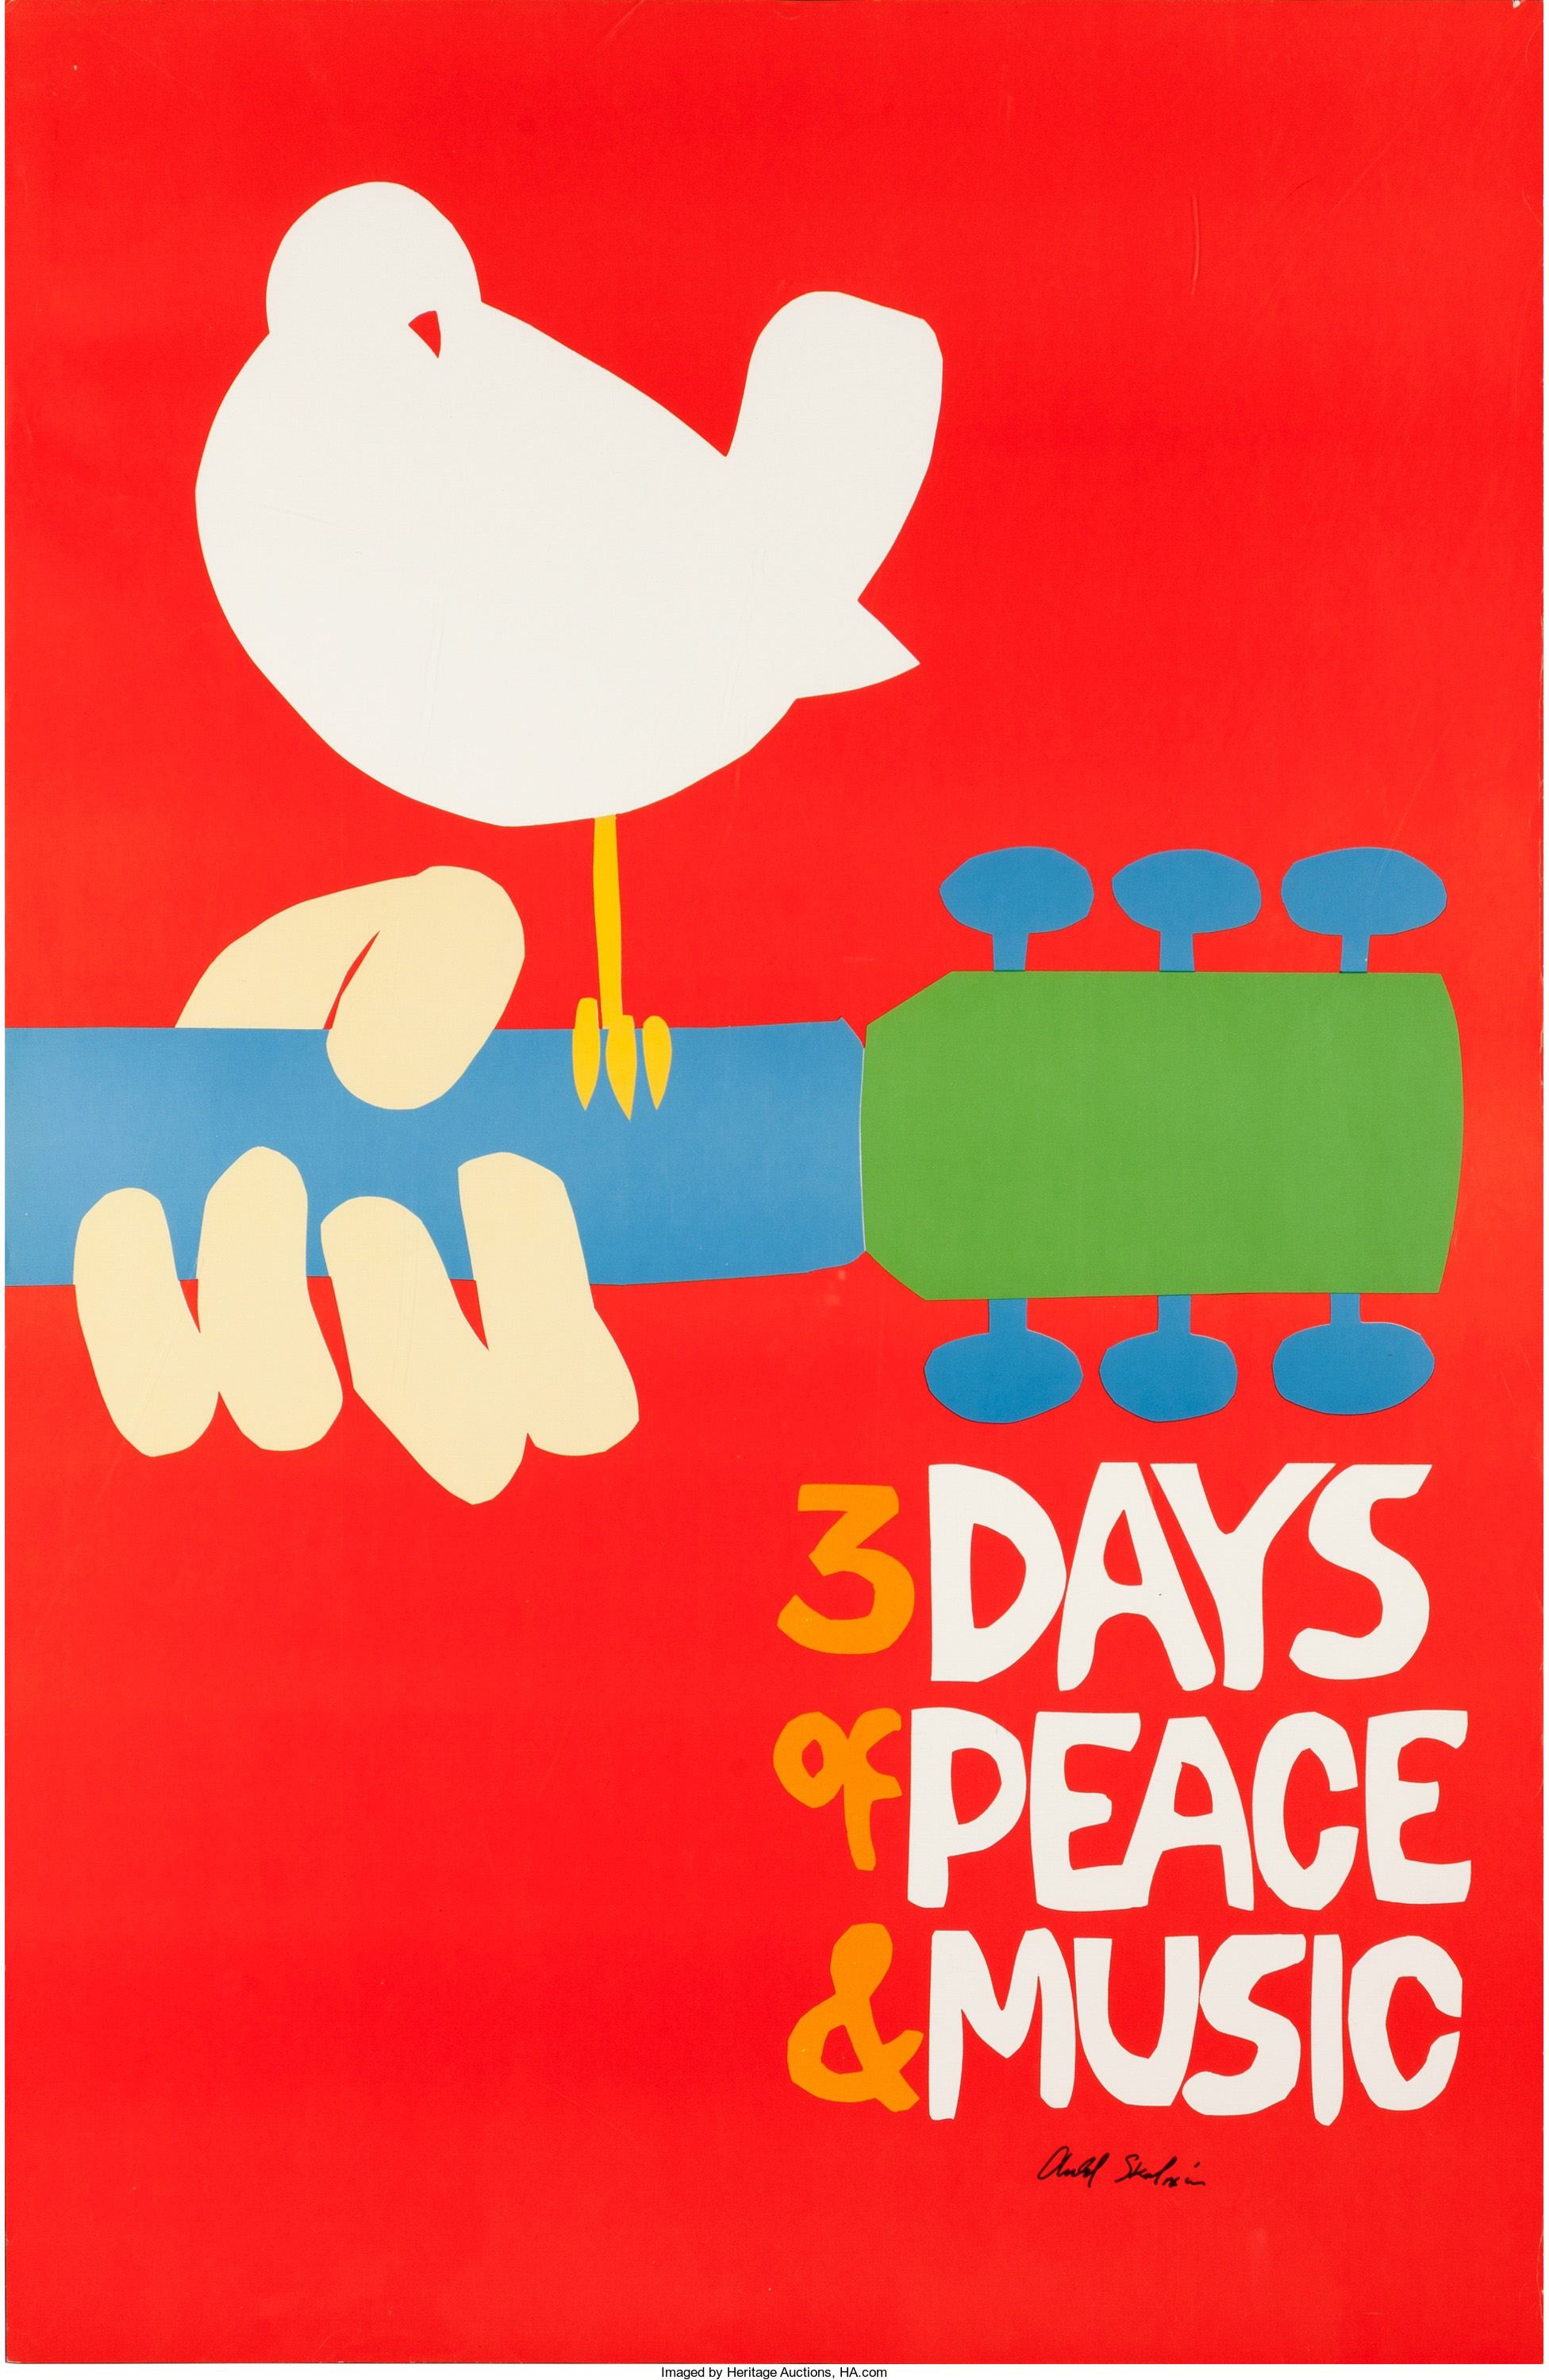 An original 1969 Woodstock concert poster that lacks its small text and is autographed by designer Arnold Skolnik.